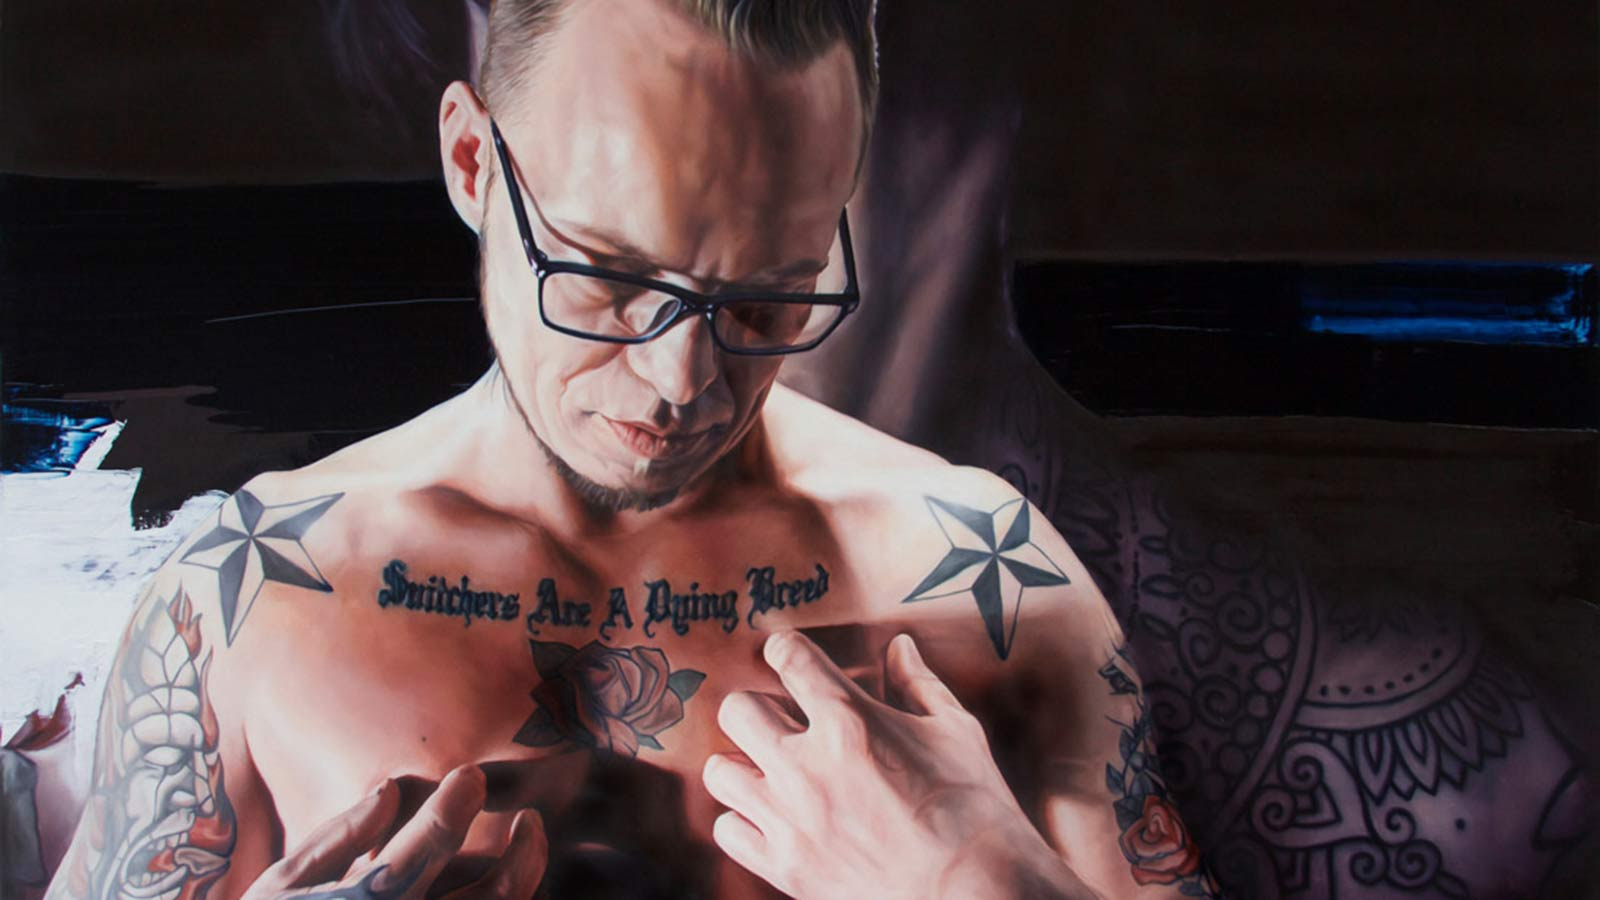 A painting of a heavily tattooed man.